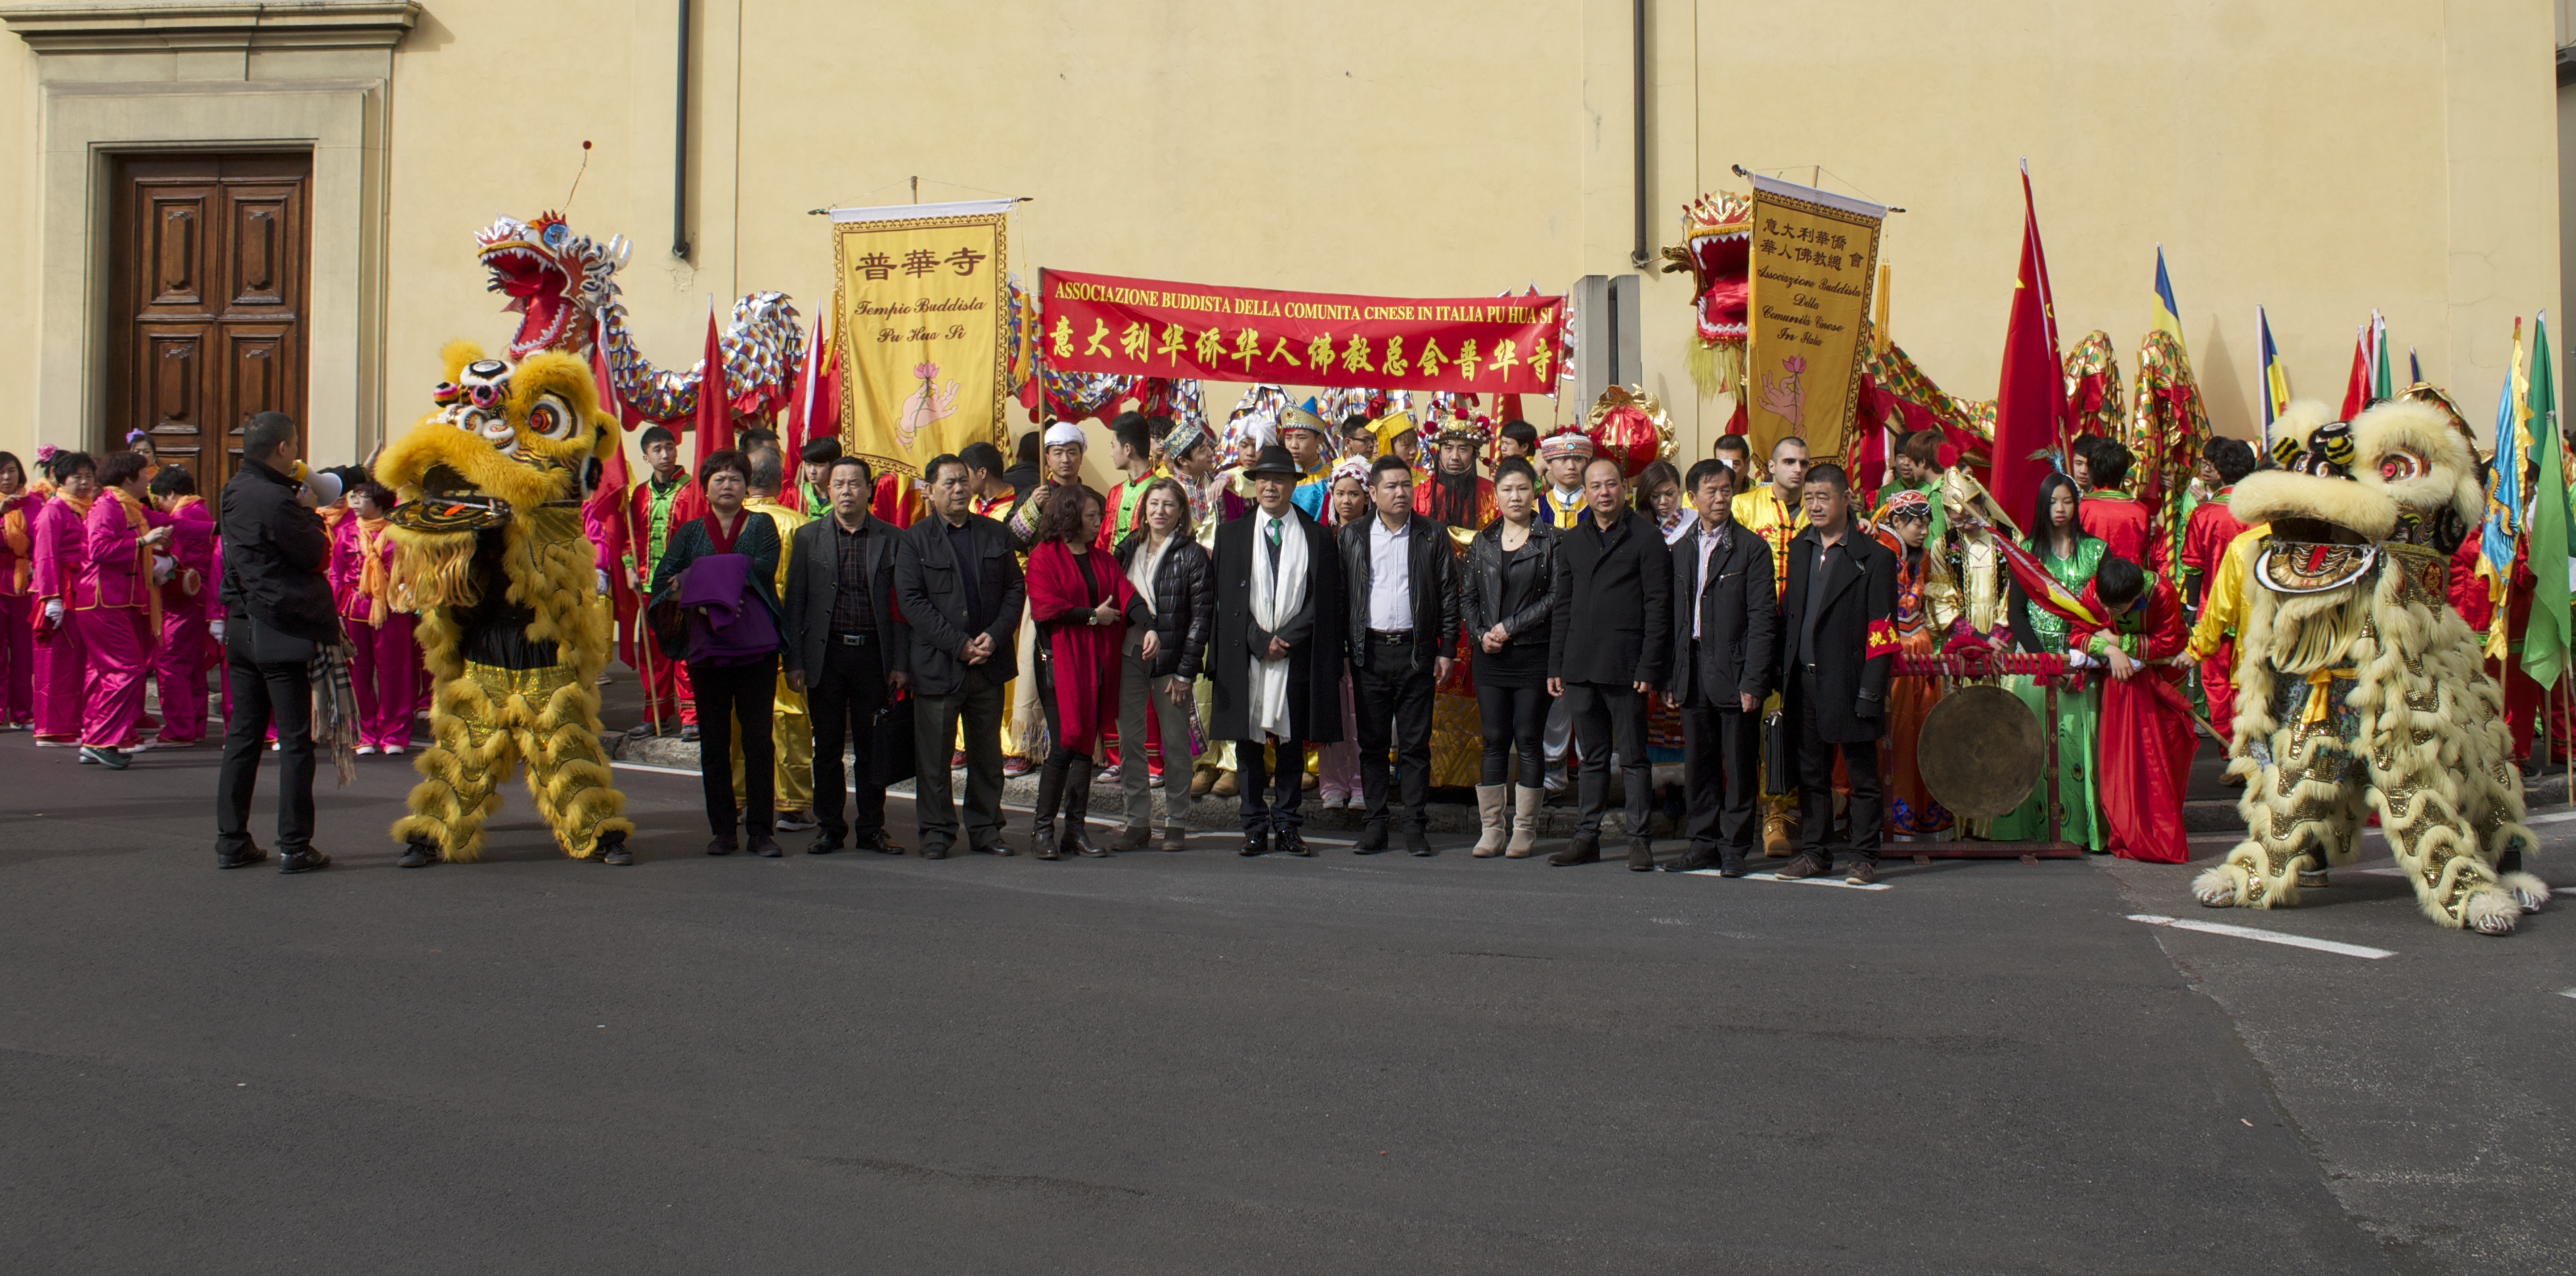 The group of the Chinese New Year in Prato